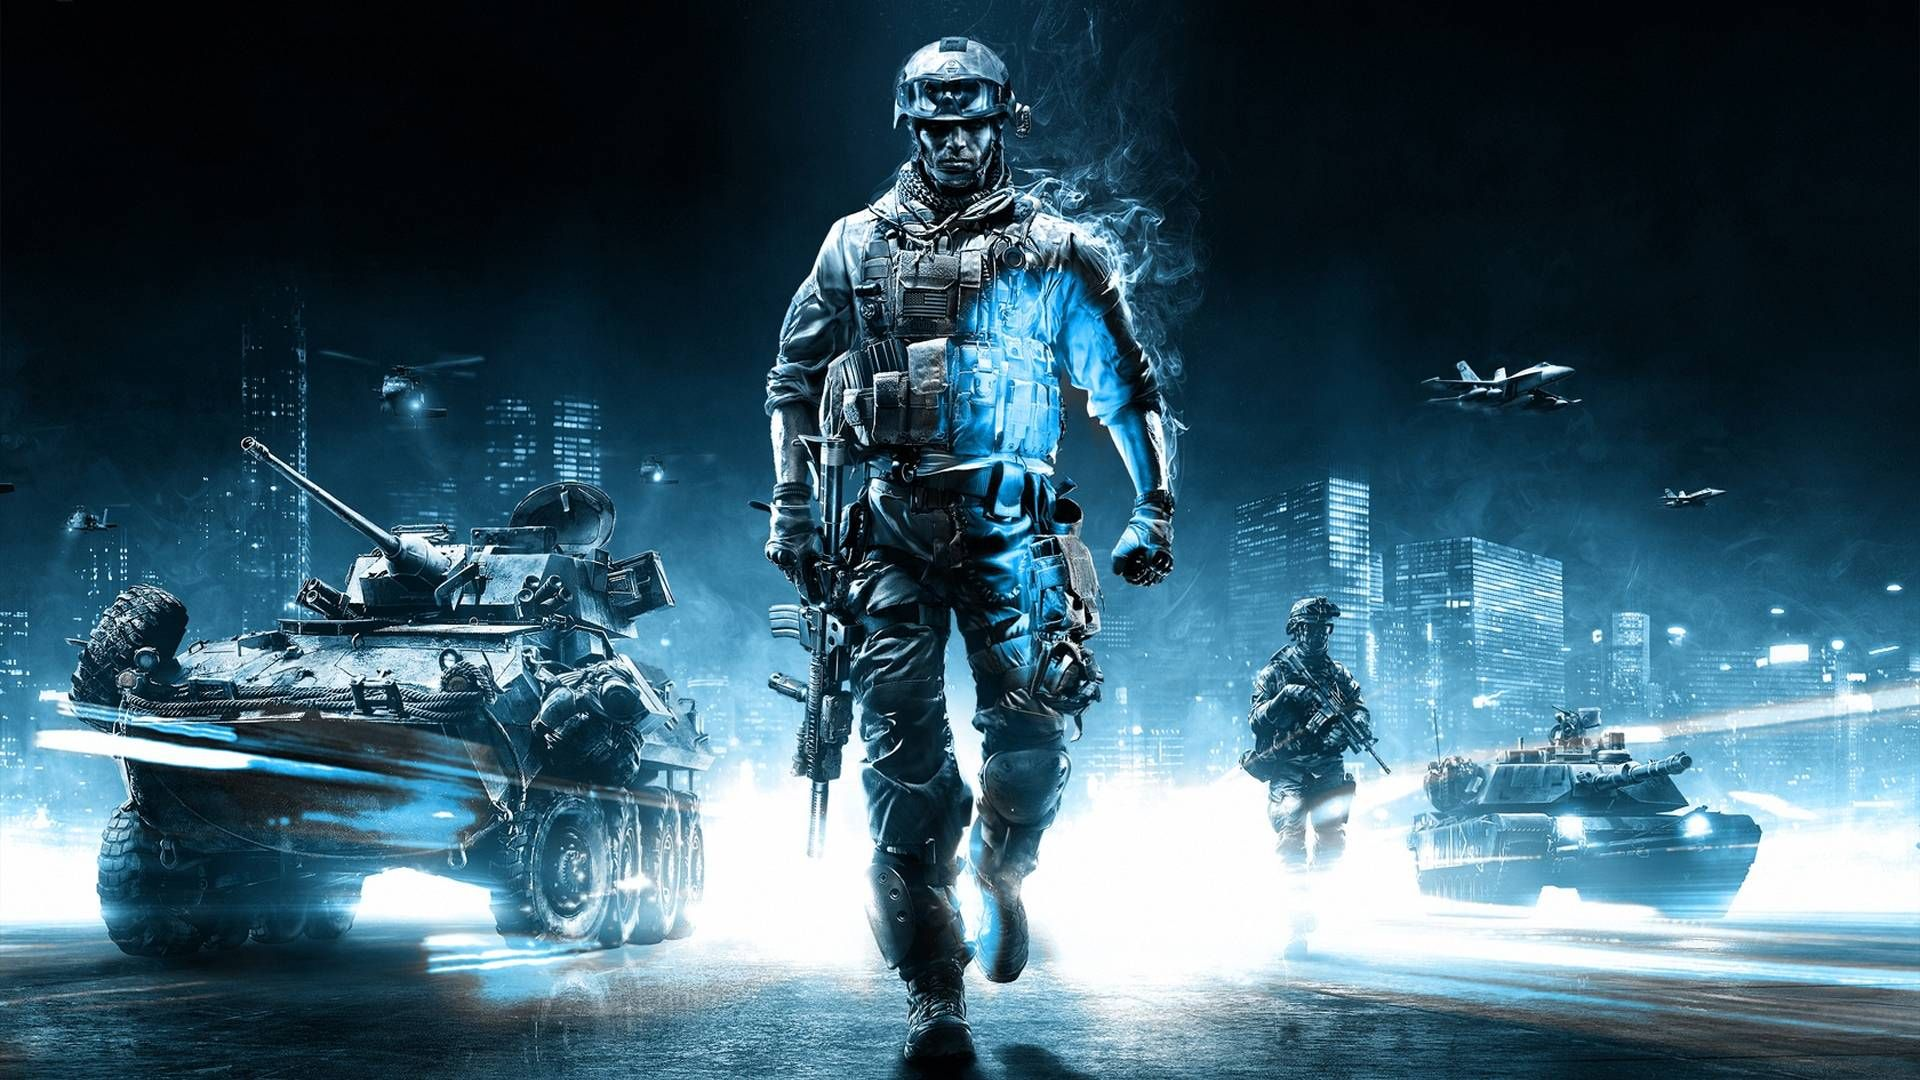 Best Gaming Wallpapers Group 48 Download For Free Pc Games Wallpapers Gaming Wallpapers Hd Gaming Wallpapers